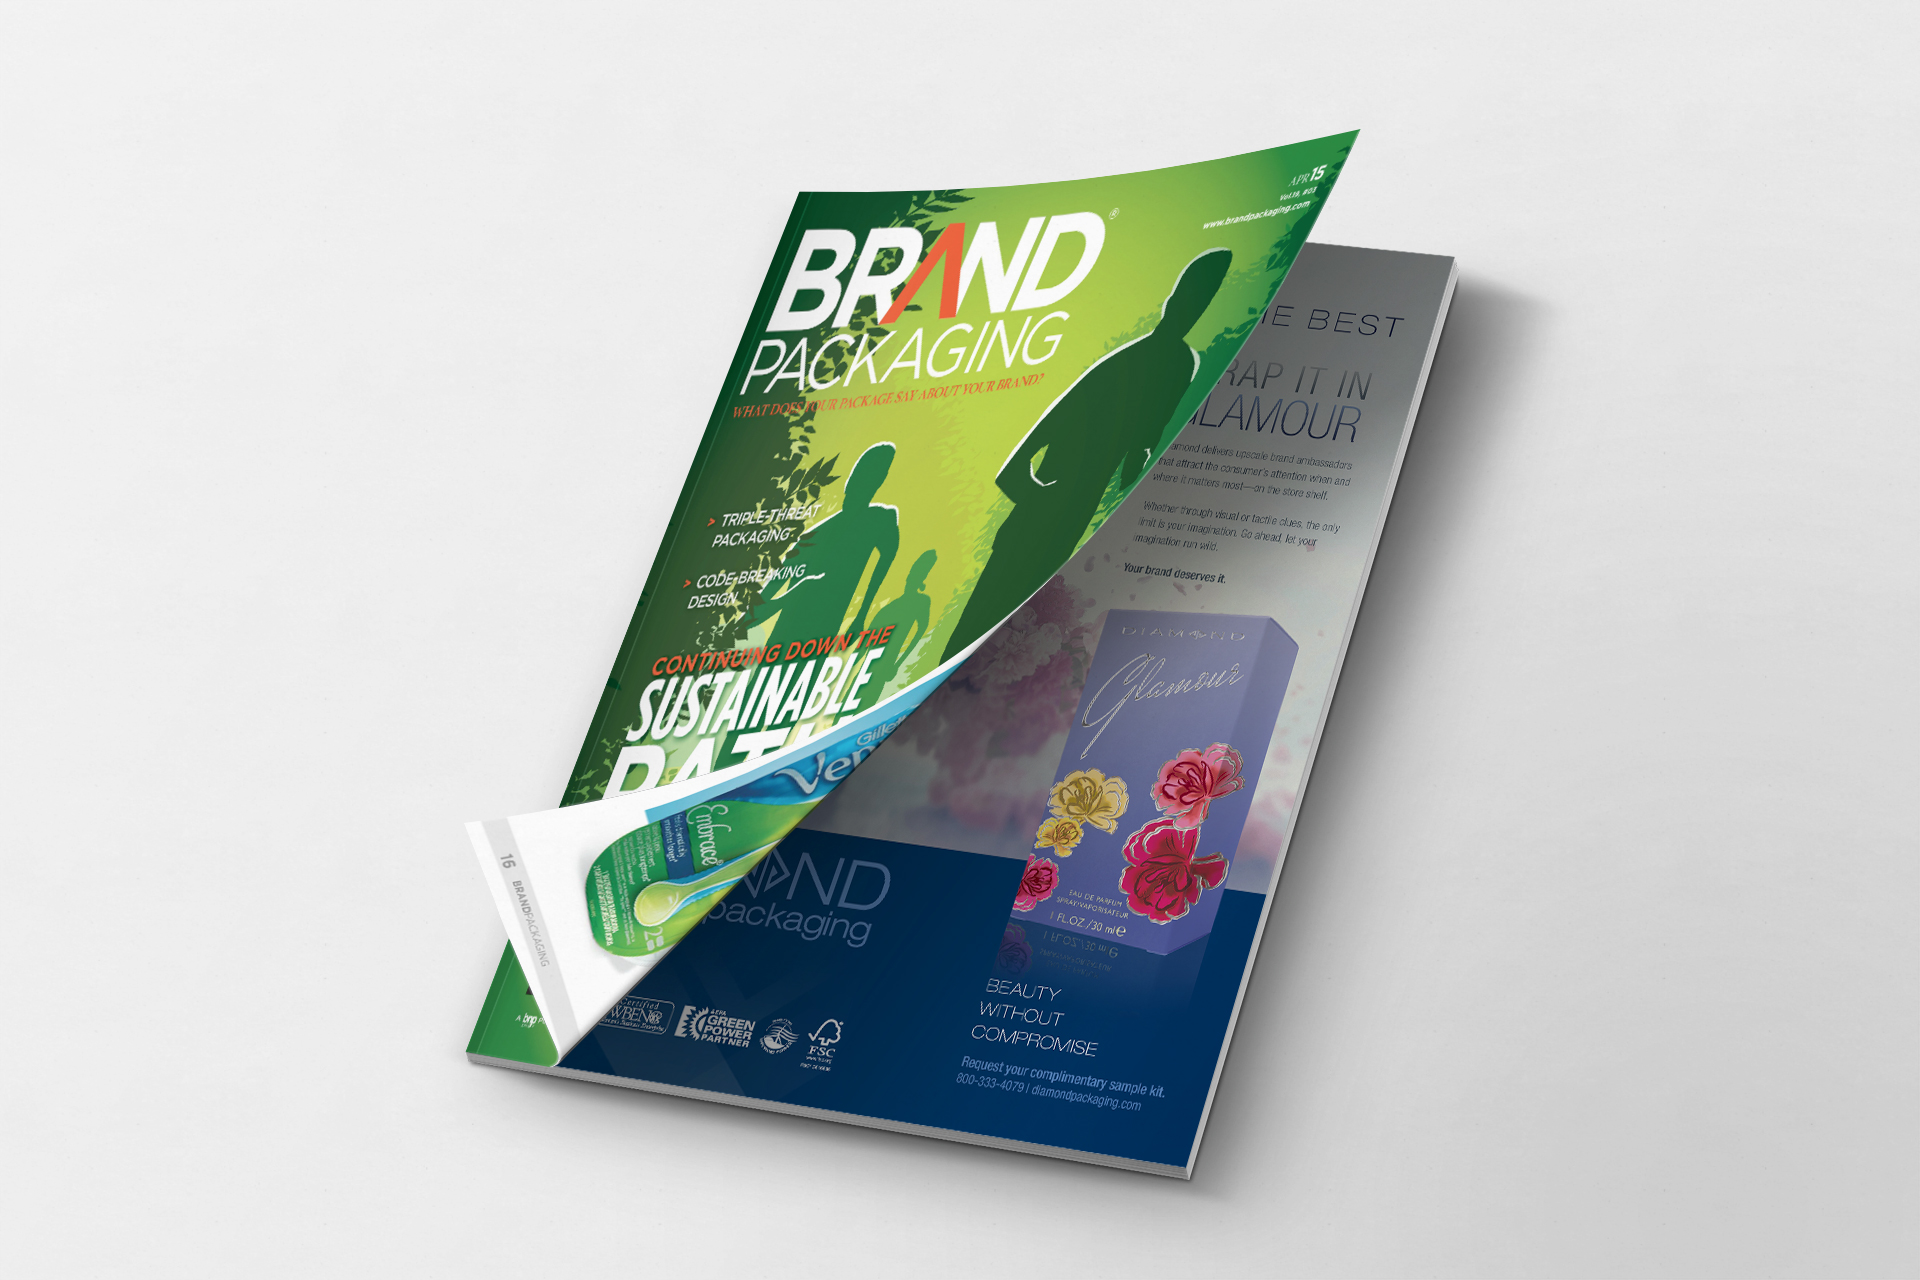 Brand Packaging Magazine Cover